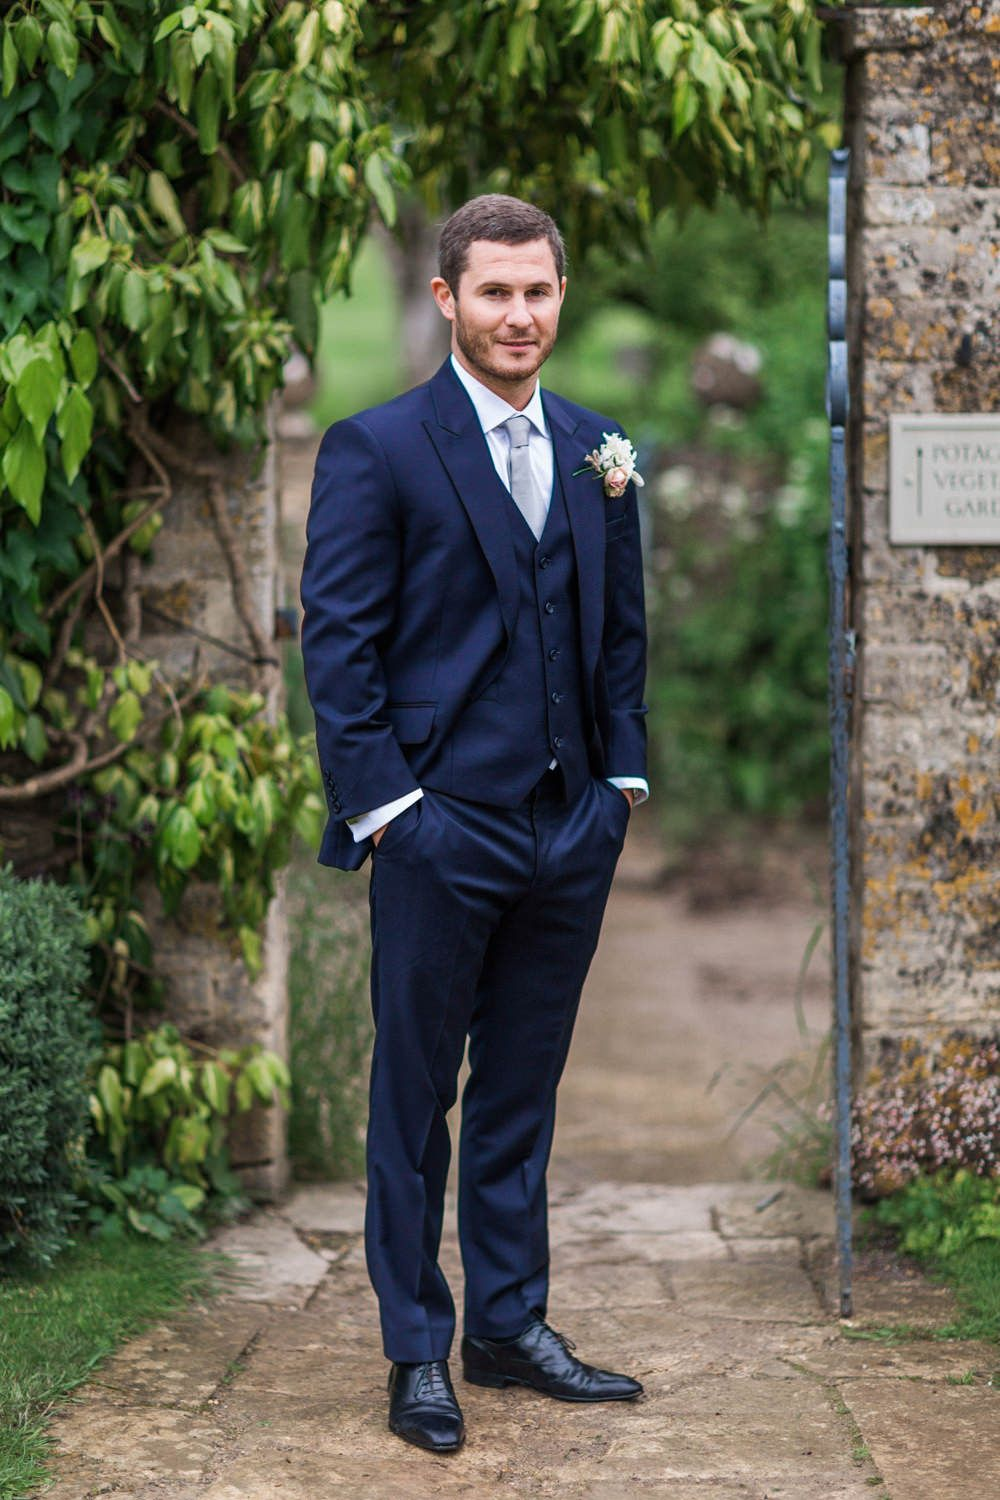 Groom Wears A Three Piece Navy Bespoke Suit Made By Dress 2 Kill In Waterloo Image By Ann Kathrin Koch Photography A Wedding At Barnsley House With The